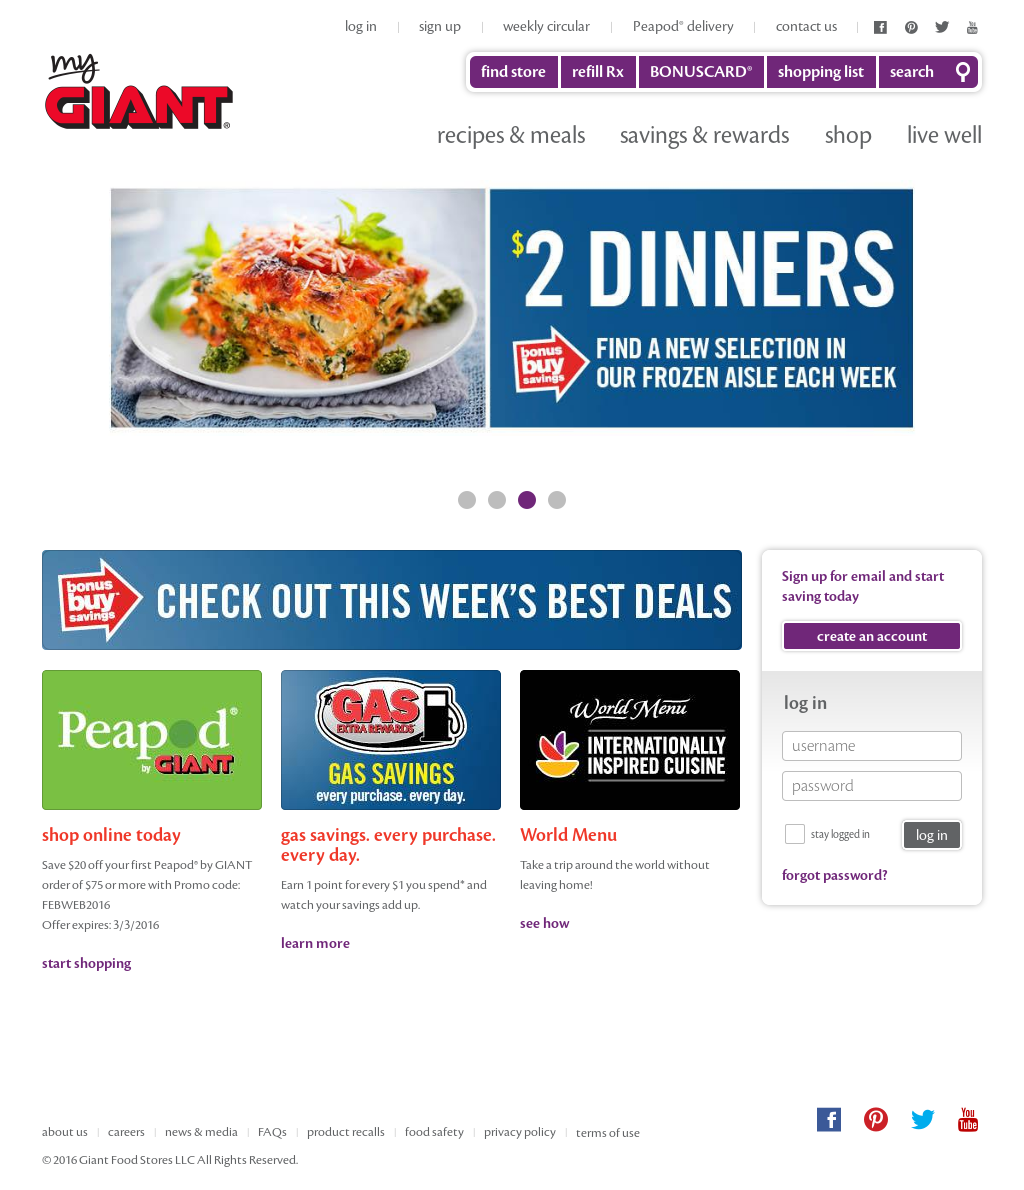 Giant Food Stores Competitors, Revenue and Employees - Owler